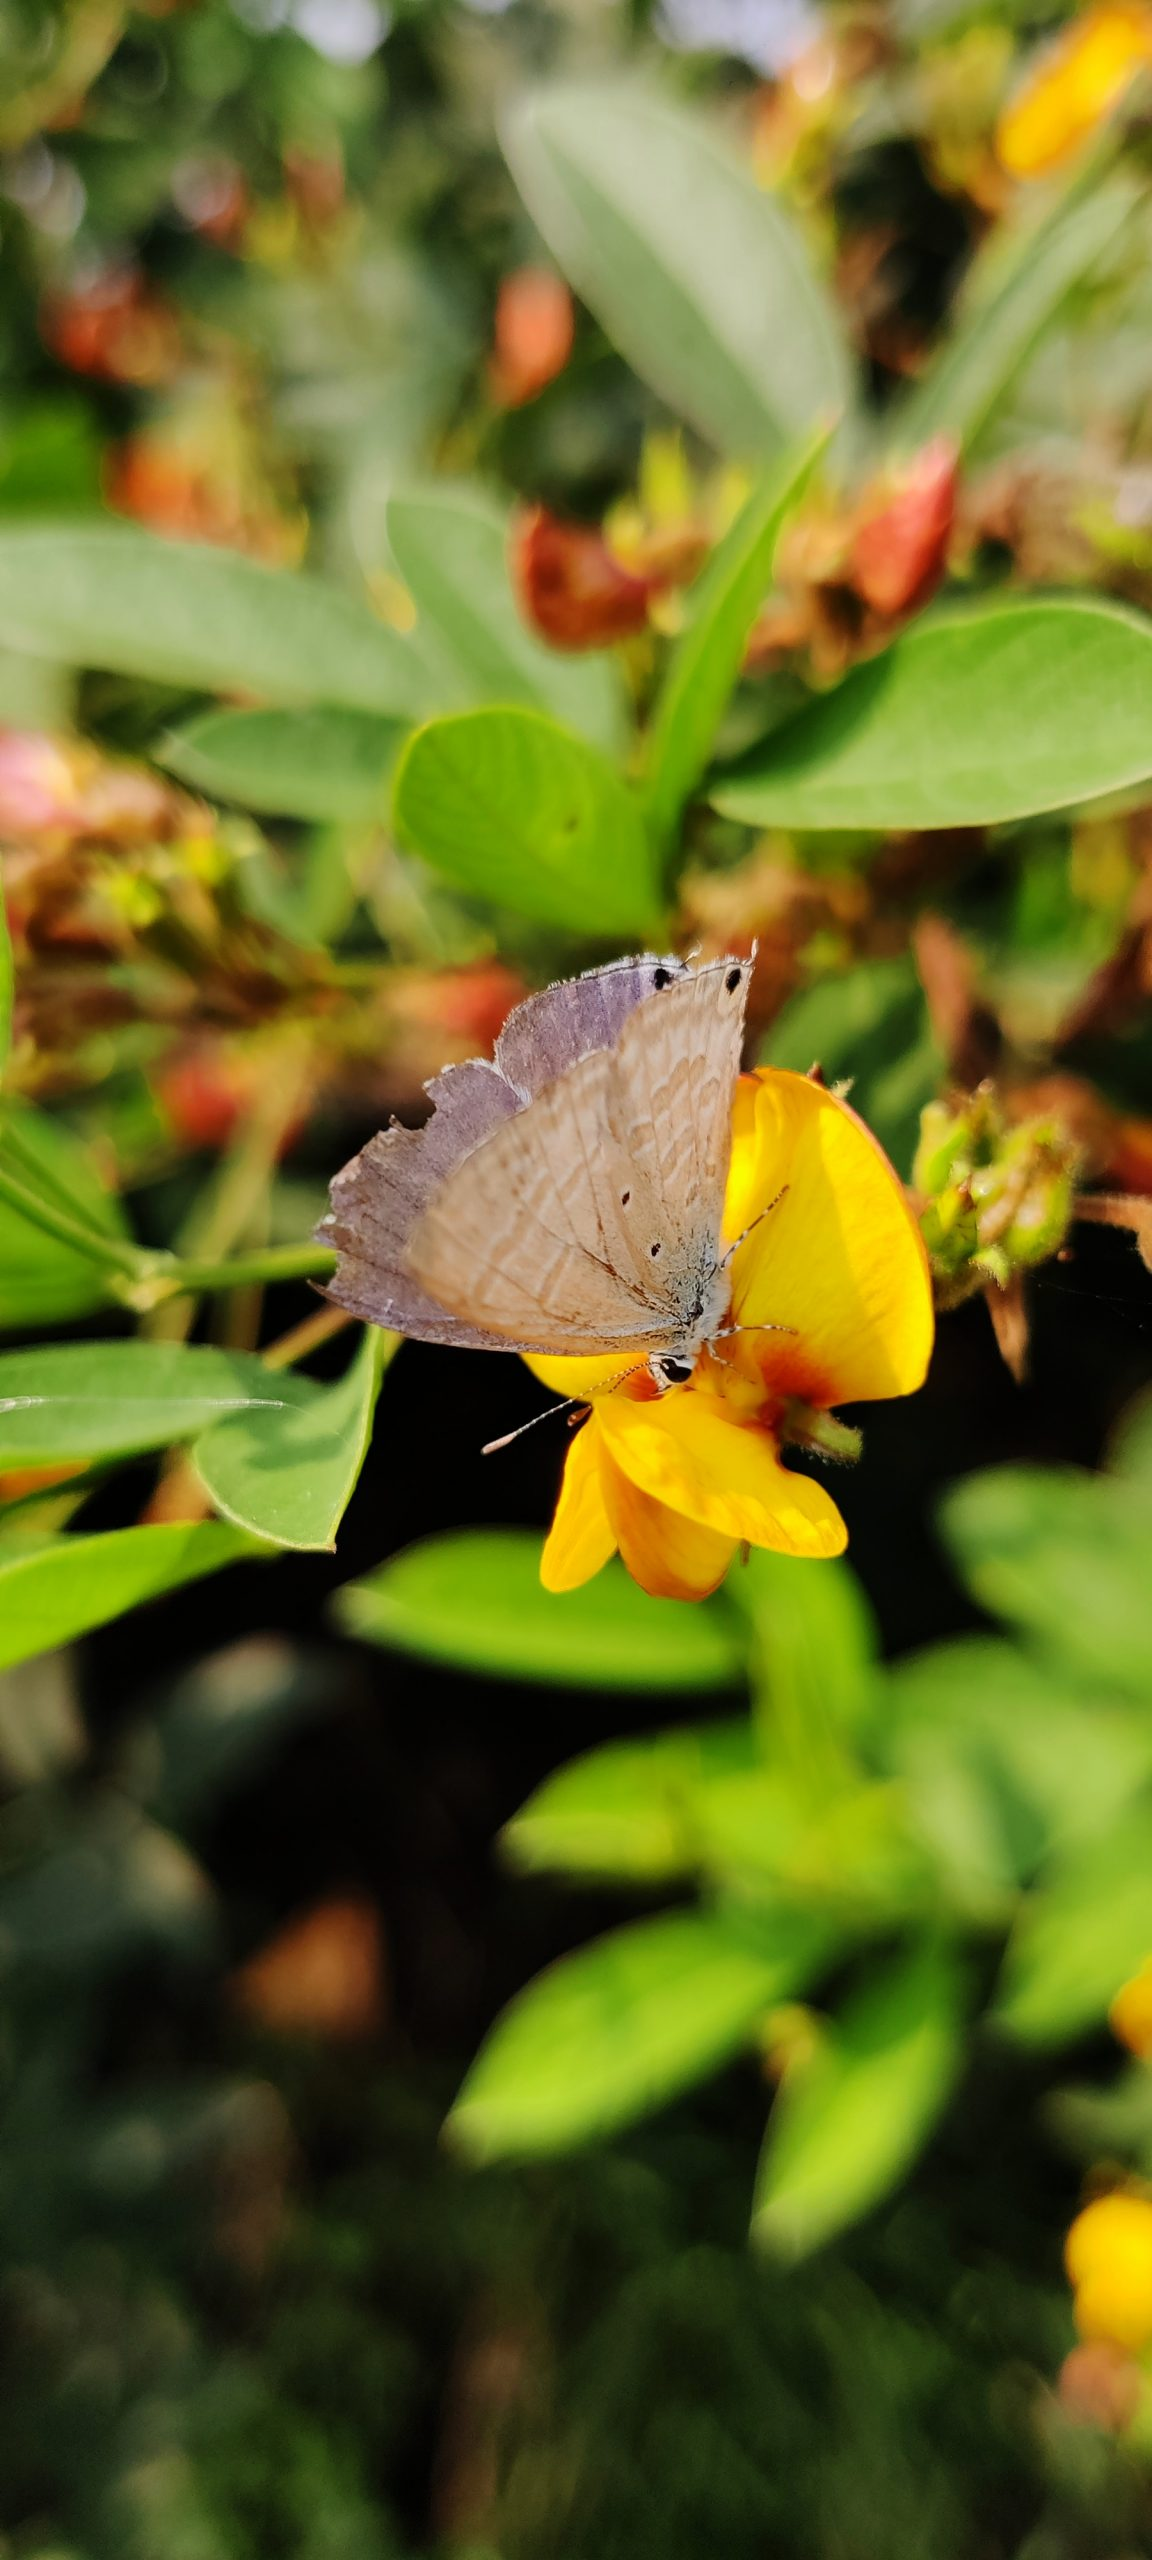 Small butterfly sitting on a flower